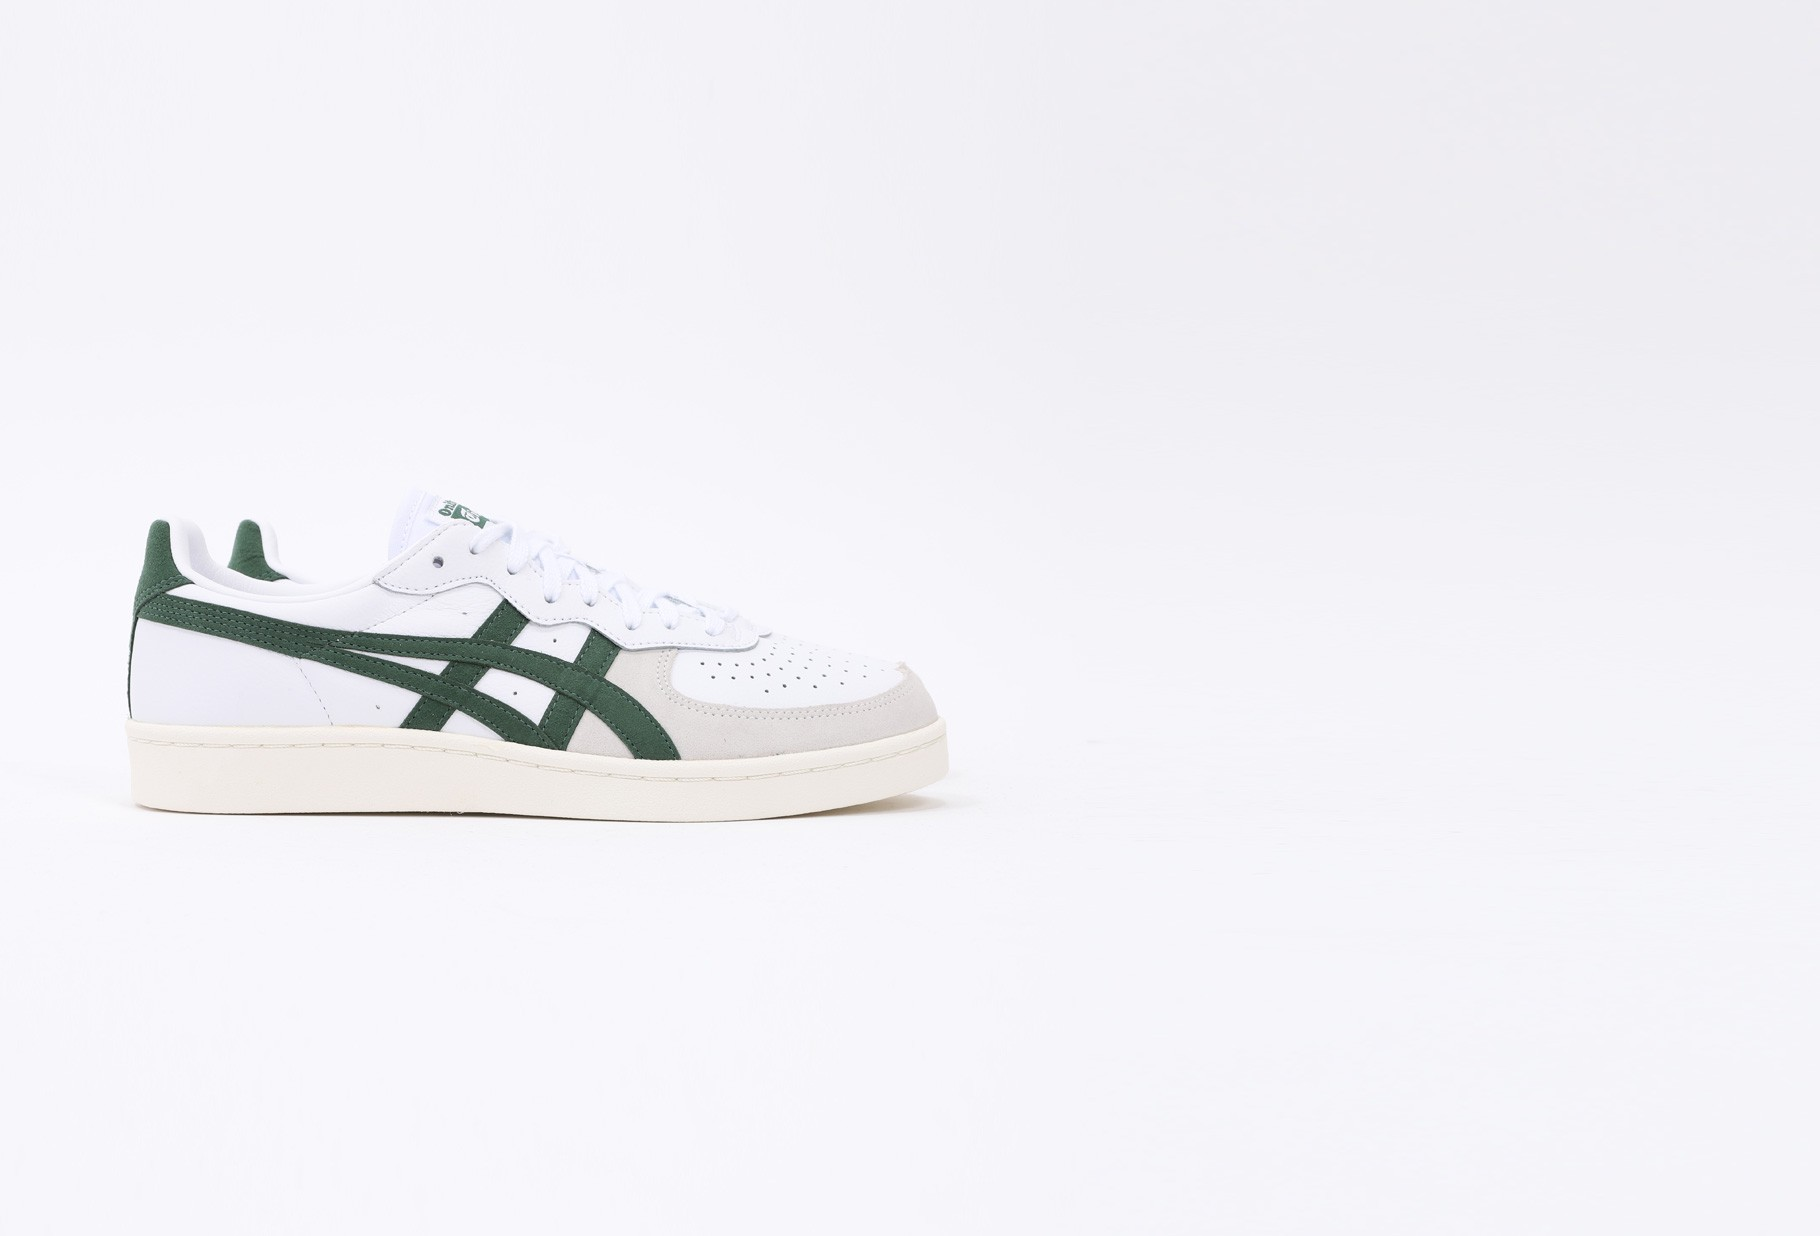 ASICS / Gsm White/hunter green